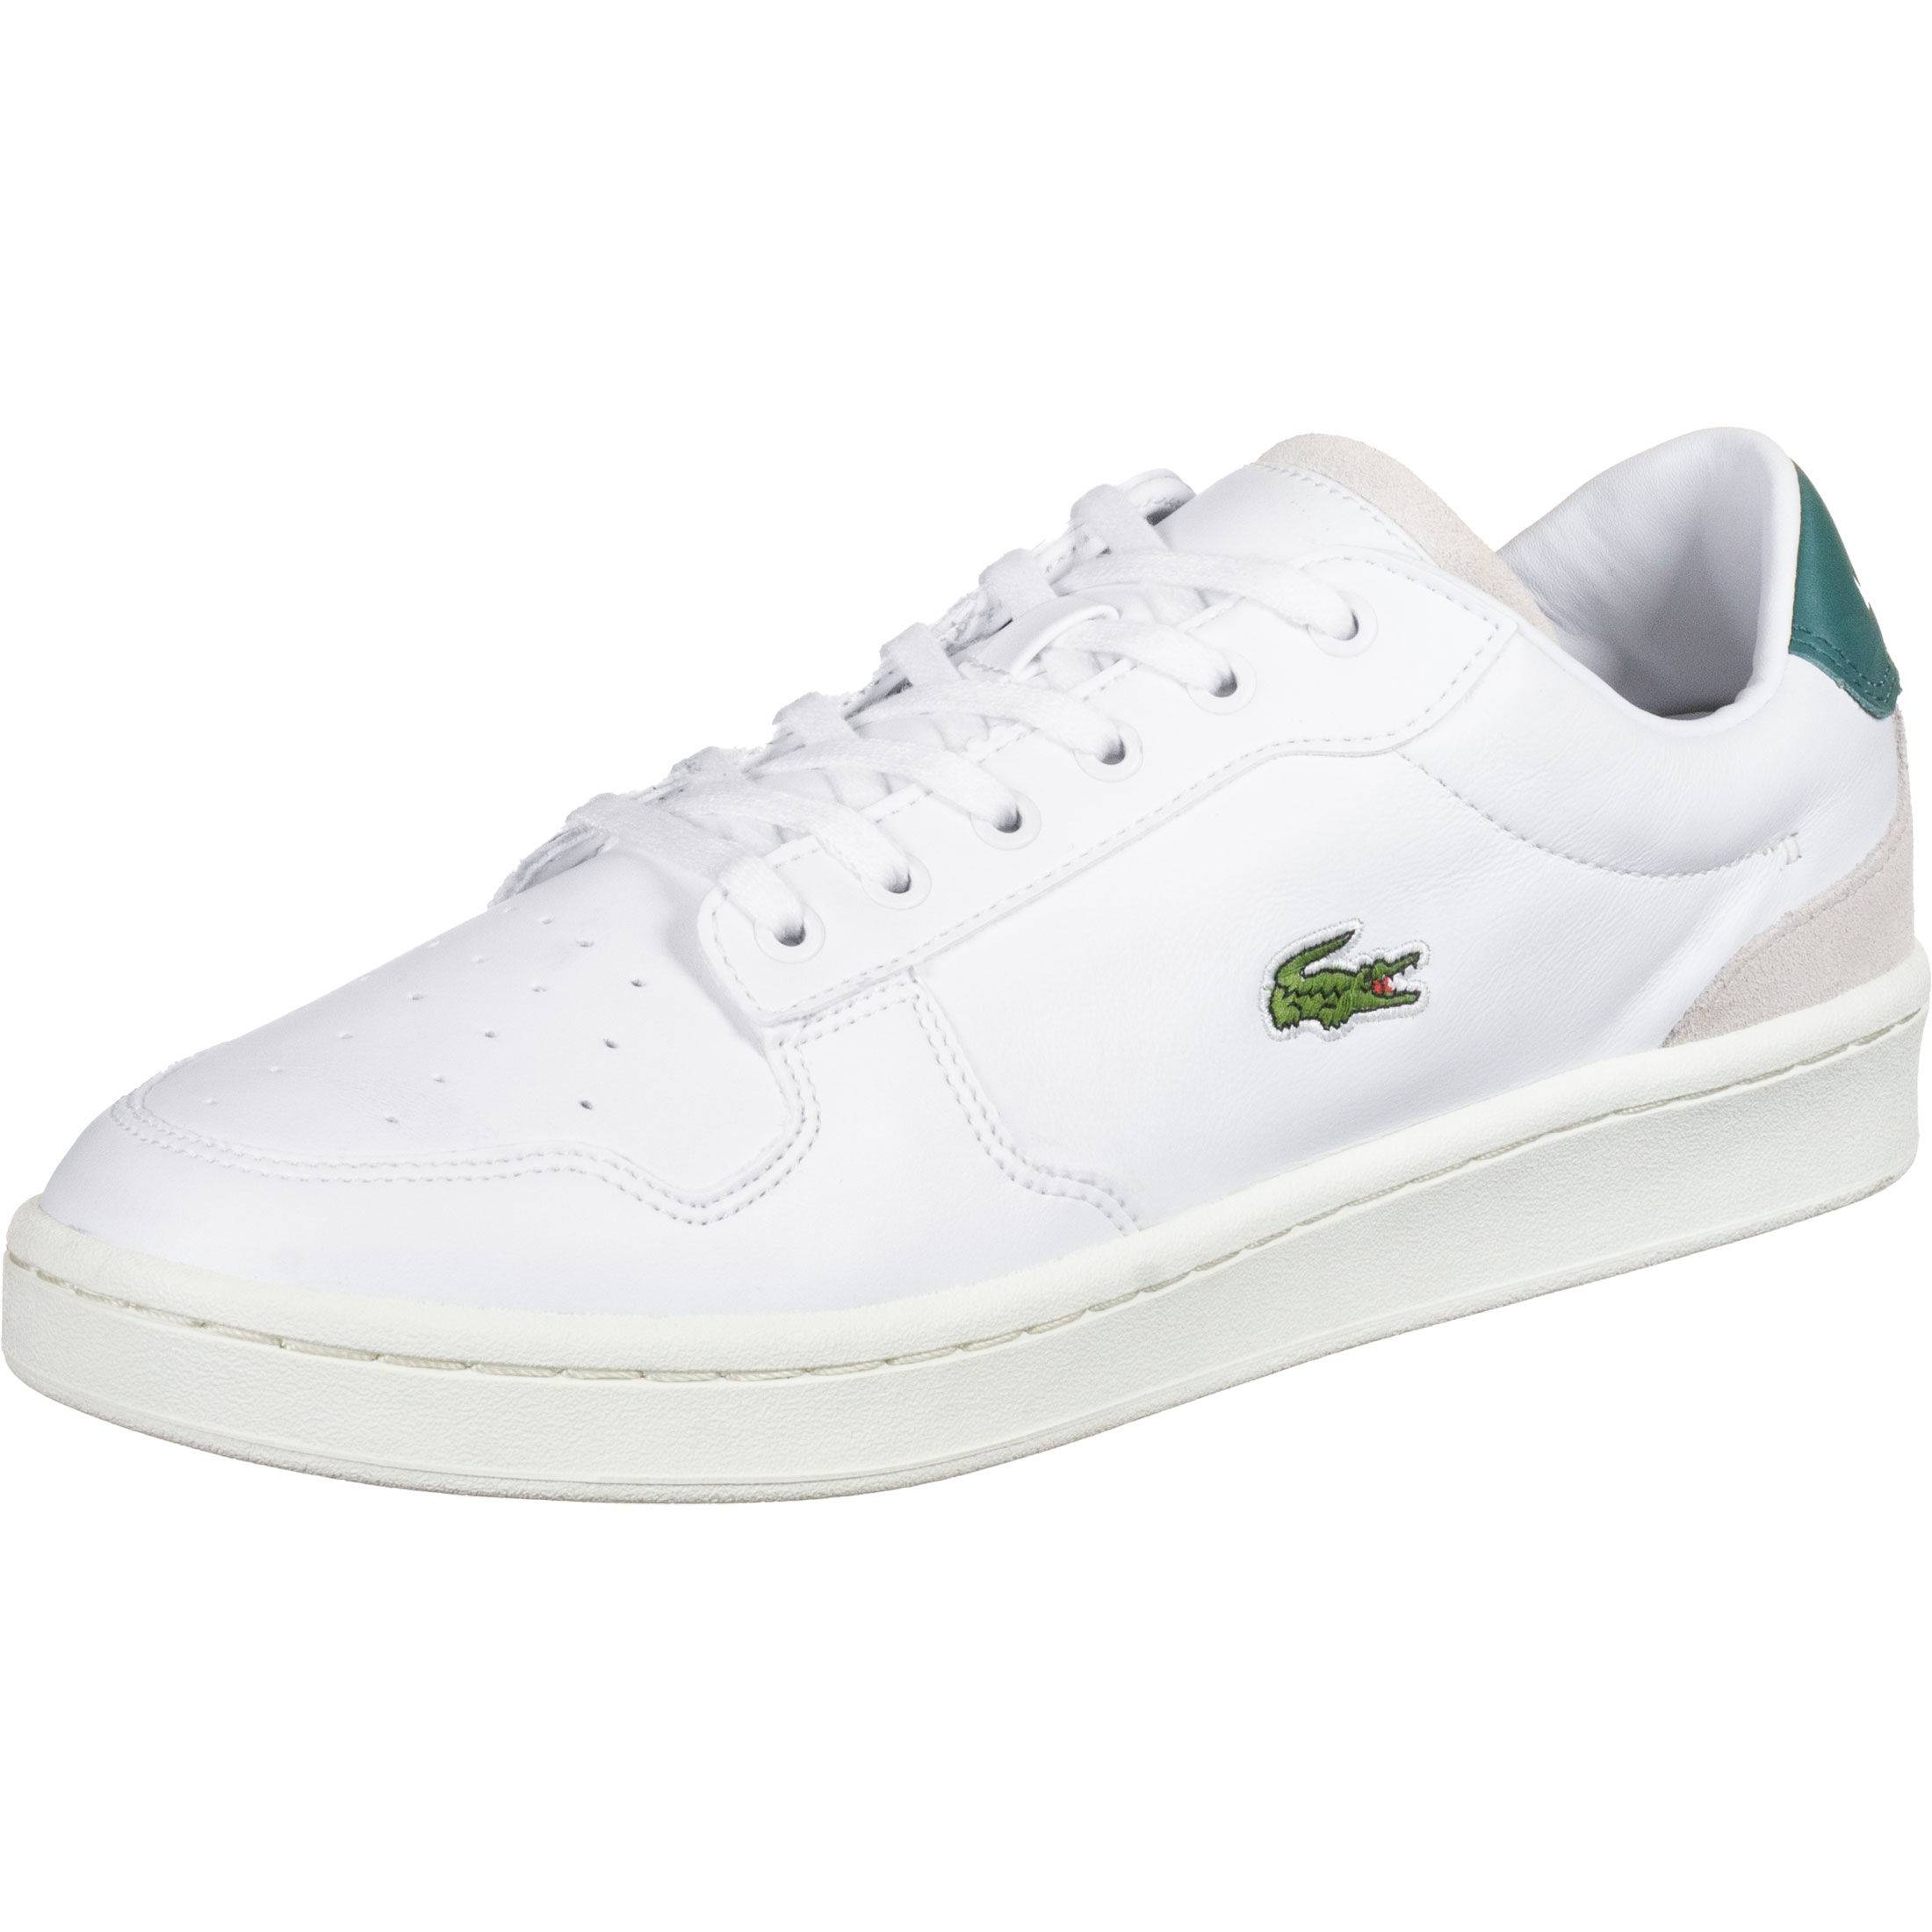 Lacoste Masters Cup, 46.5 EU, homme, blanc